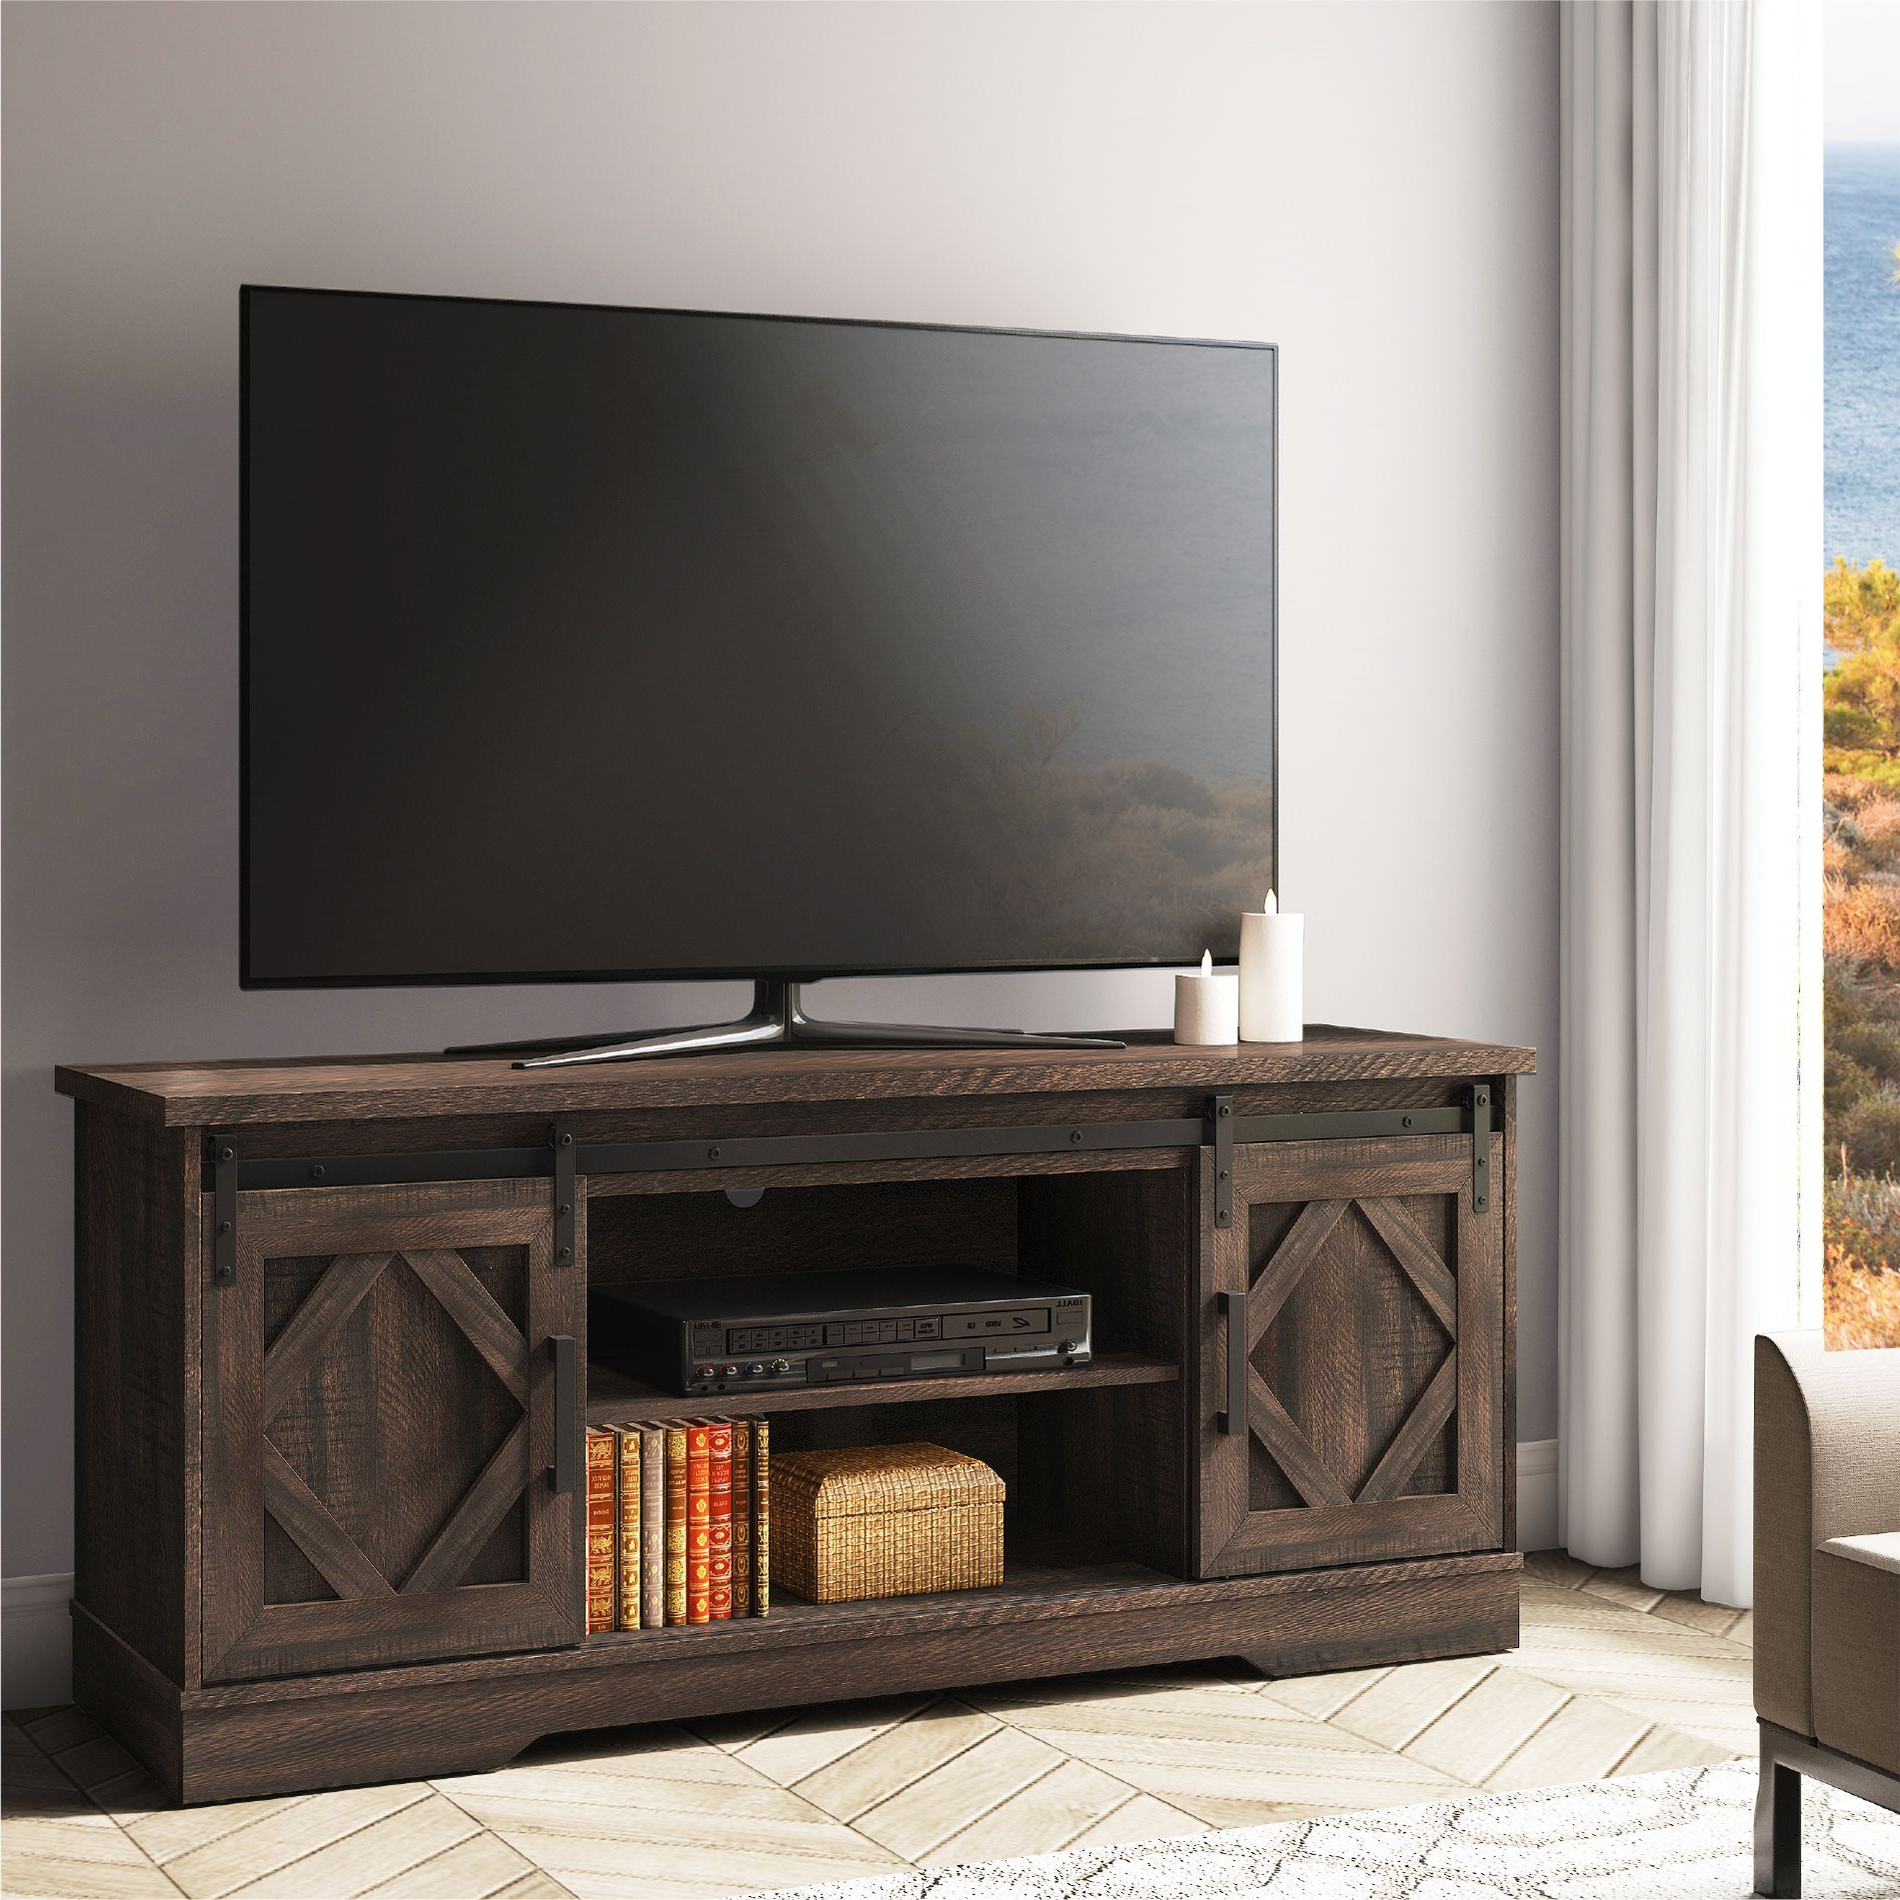 Fitueyes Sliding Barn Door Tv Stand For 70 Inch Flat Throughout Fitueyes Rolling Tv Cart For Living Room (View 18 of 20)